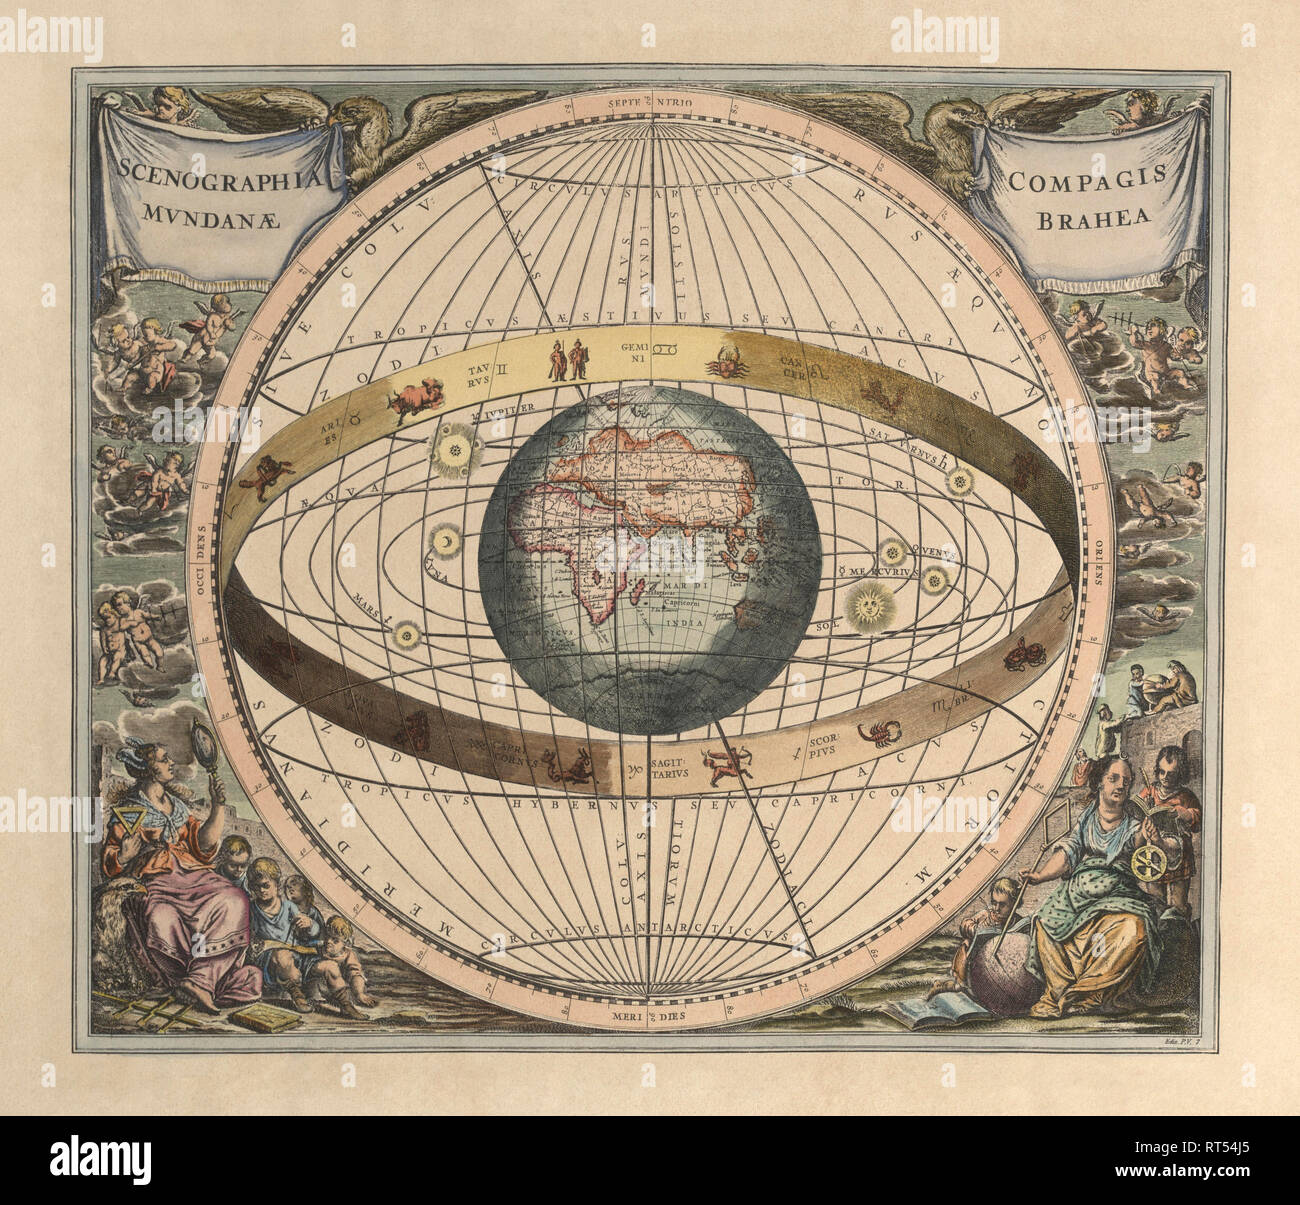 Vintage astronomy print depicts a view of geocentrism. Stock Photo